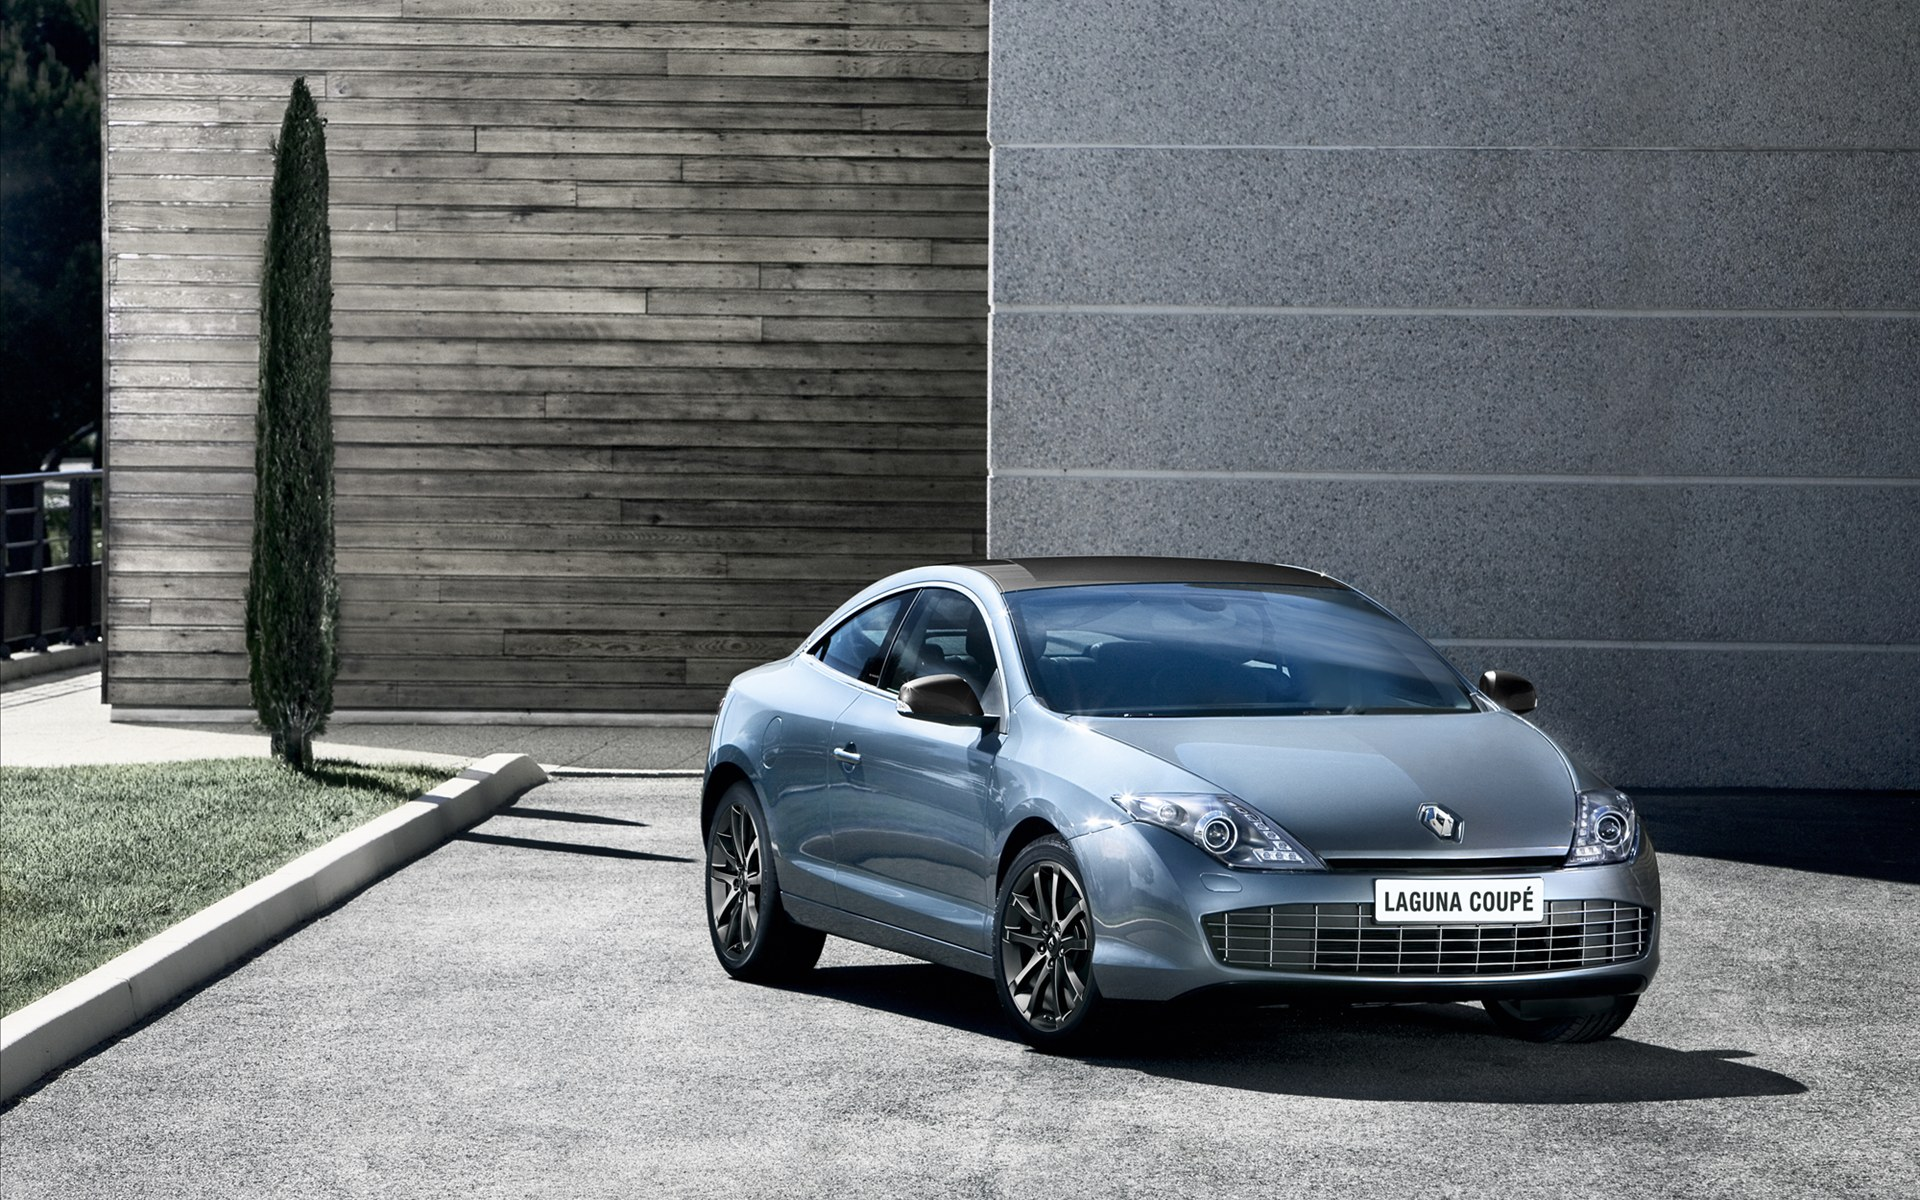 renault laguna iii coupe 2012 wallpaper